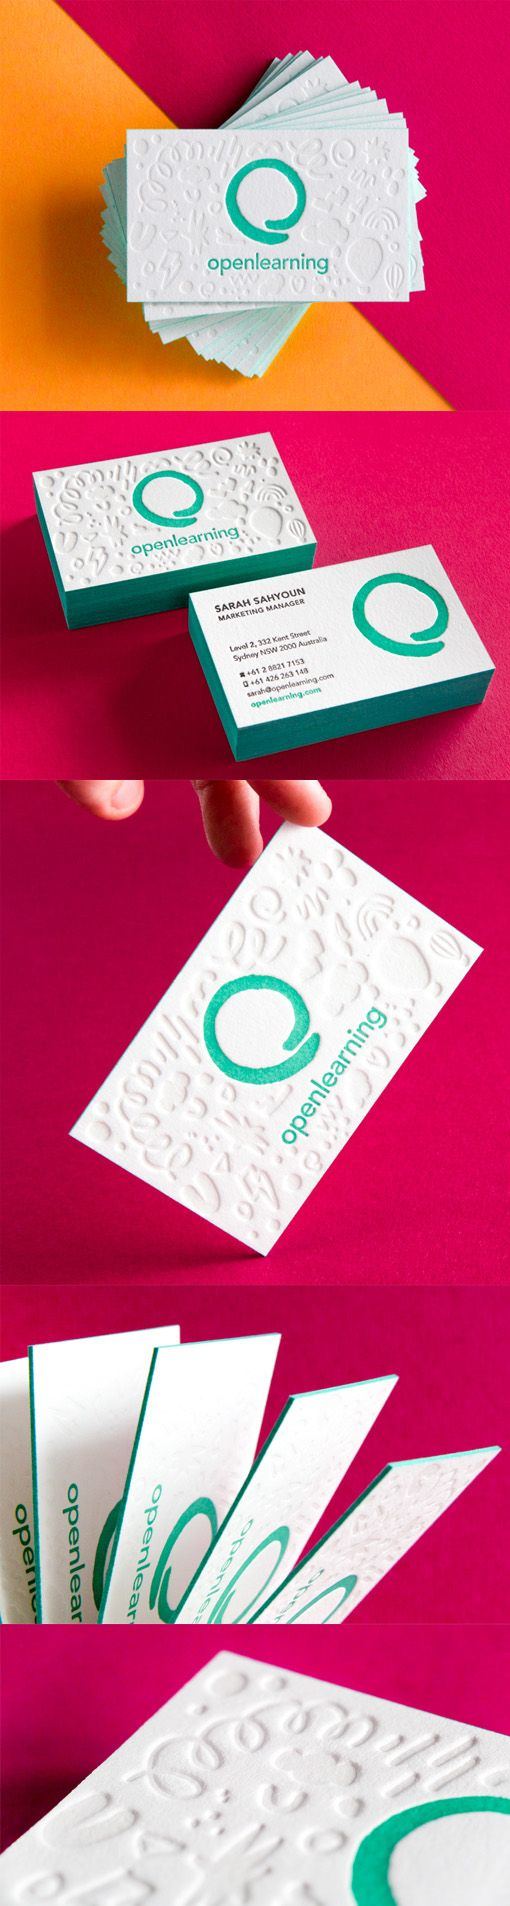 Bright And Cheerful Textured Letterpress Edge Painted Business Card For An Education Community [repined by www.kickresume.com]